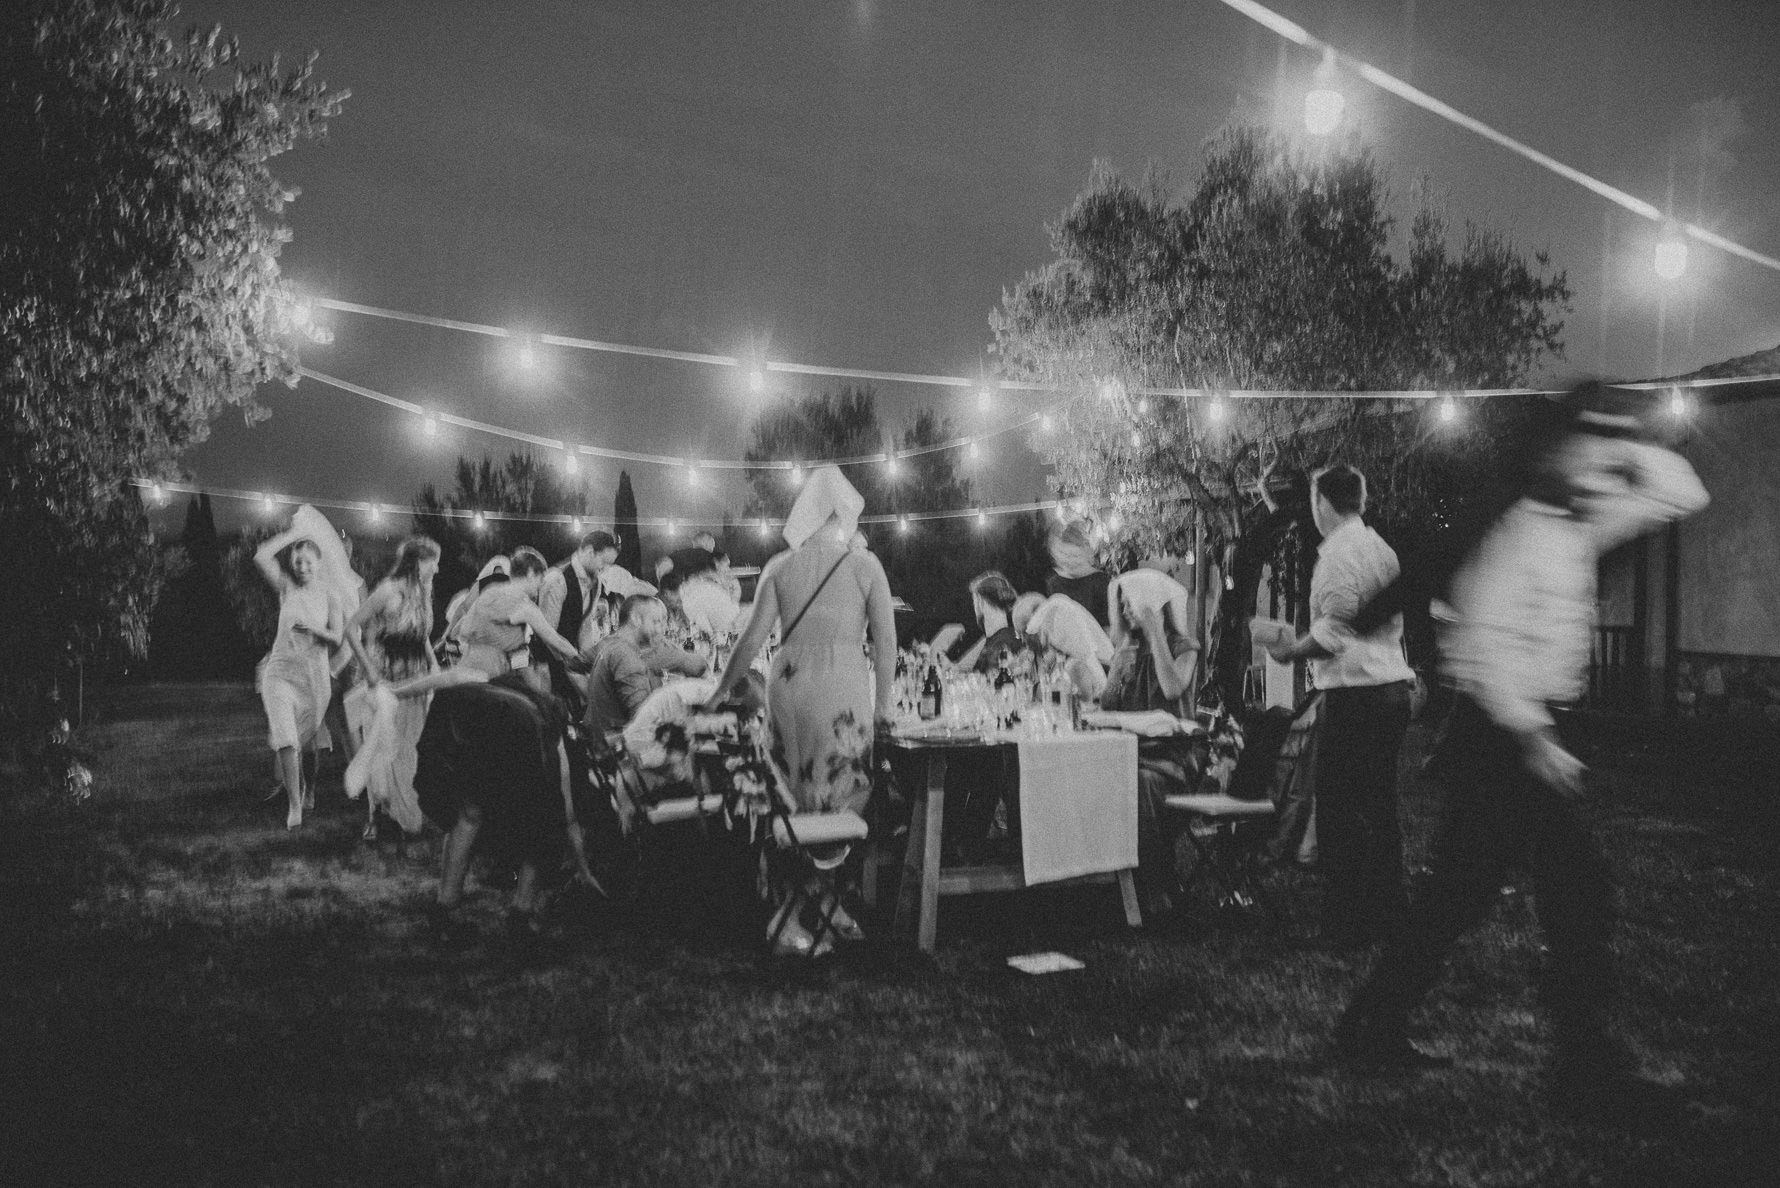 romantic-wedding-country-chic-in-tenuta-di-canonica-todi